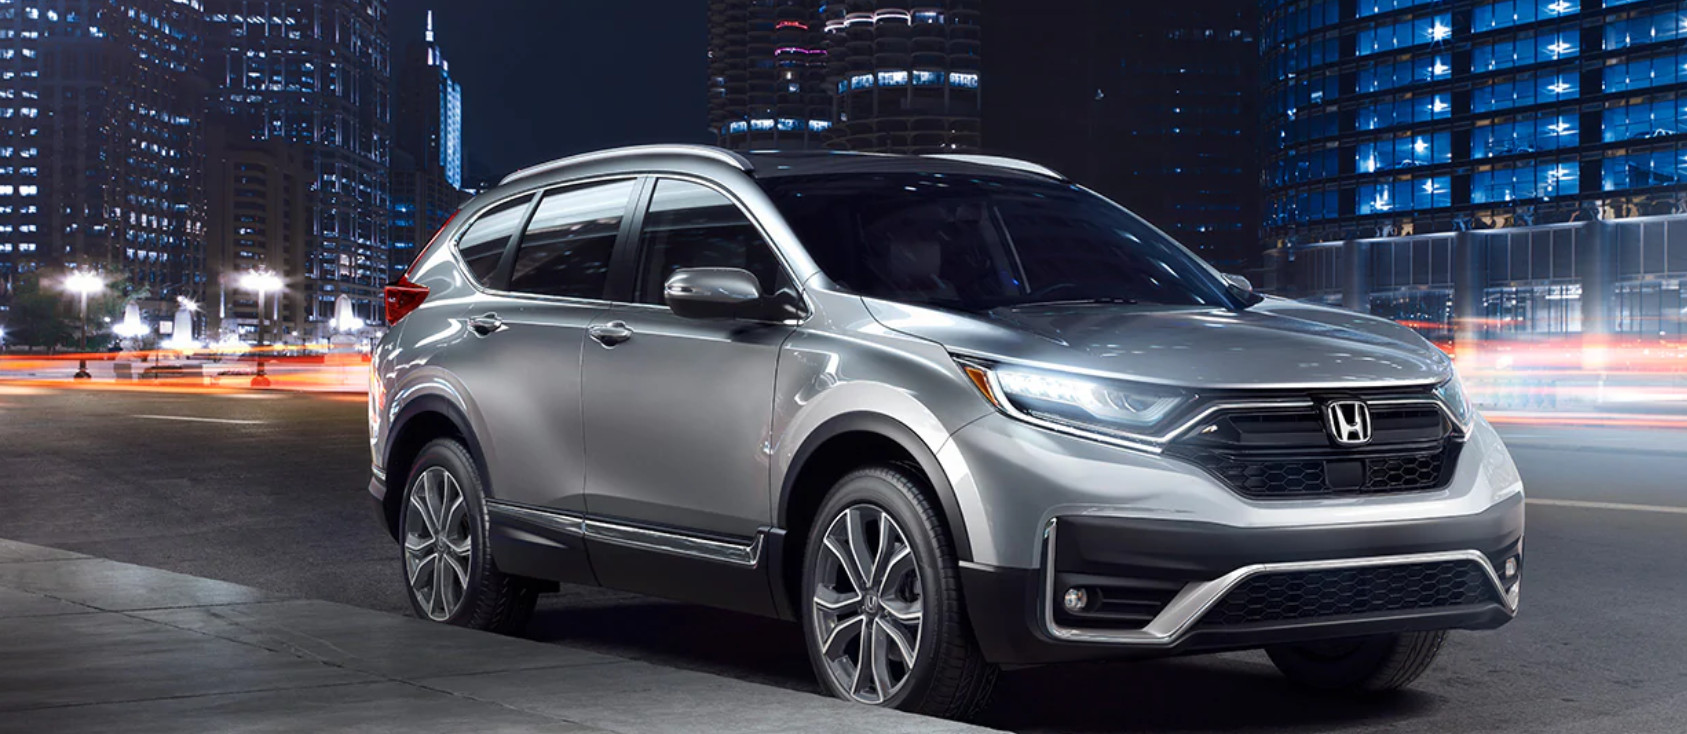 2020 Honda CR-V Hybrid driving through the streets of San Diego. Available now at Pacific Honda of San Diego